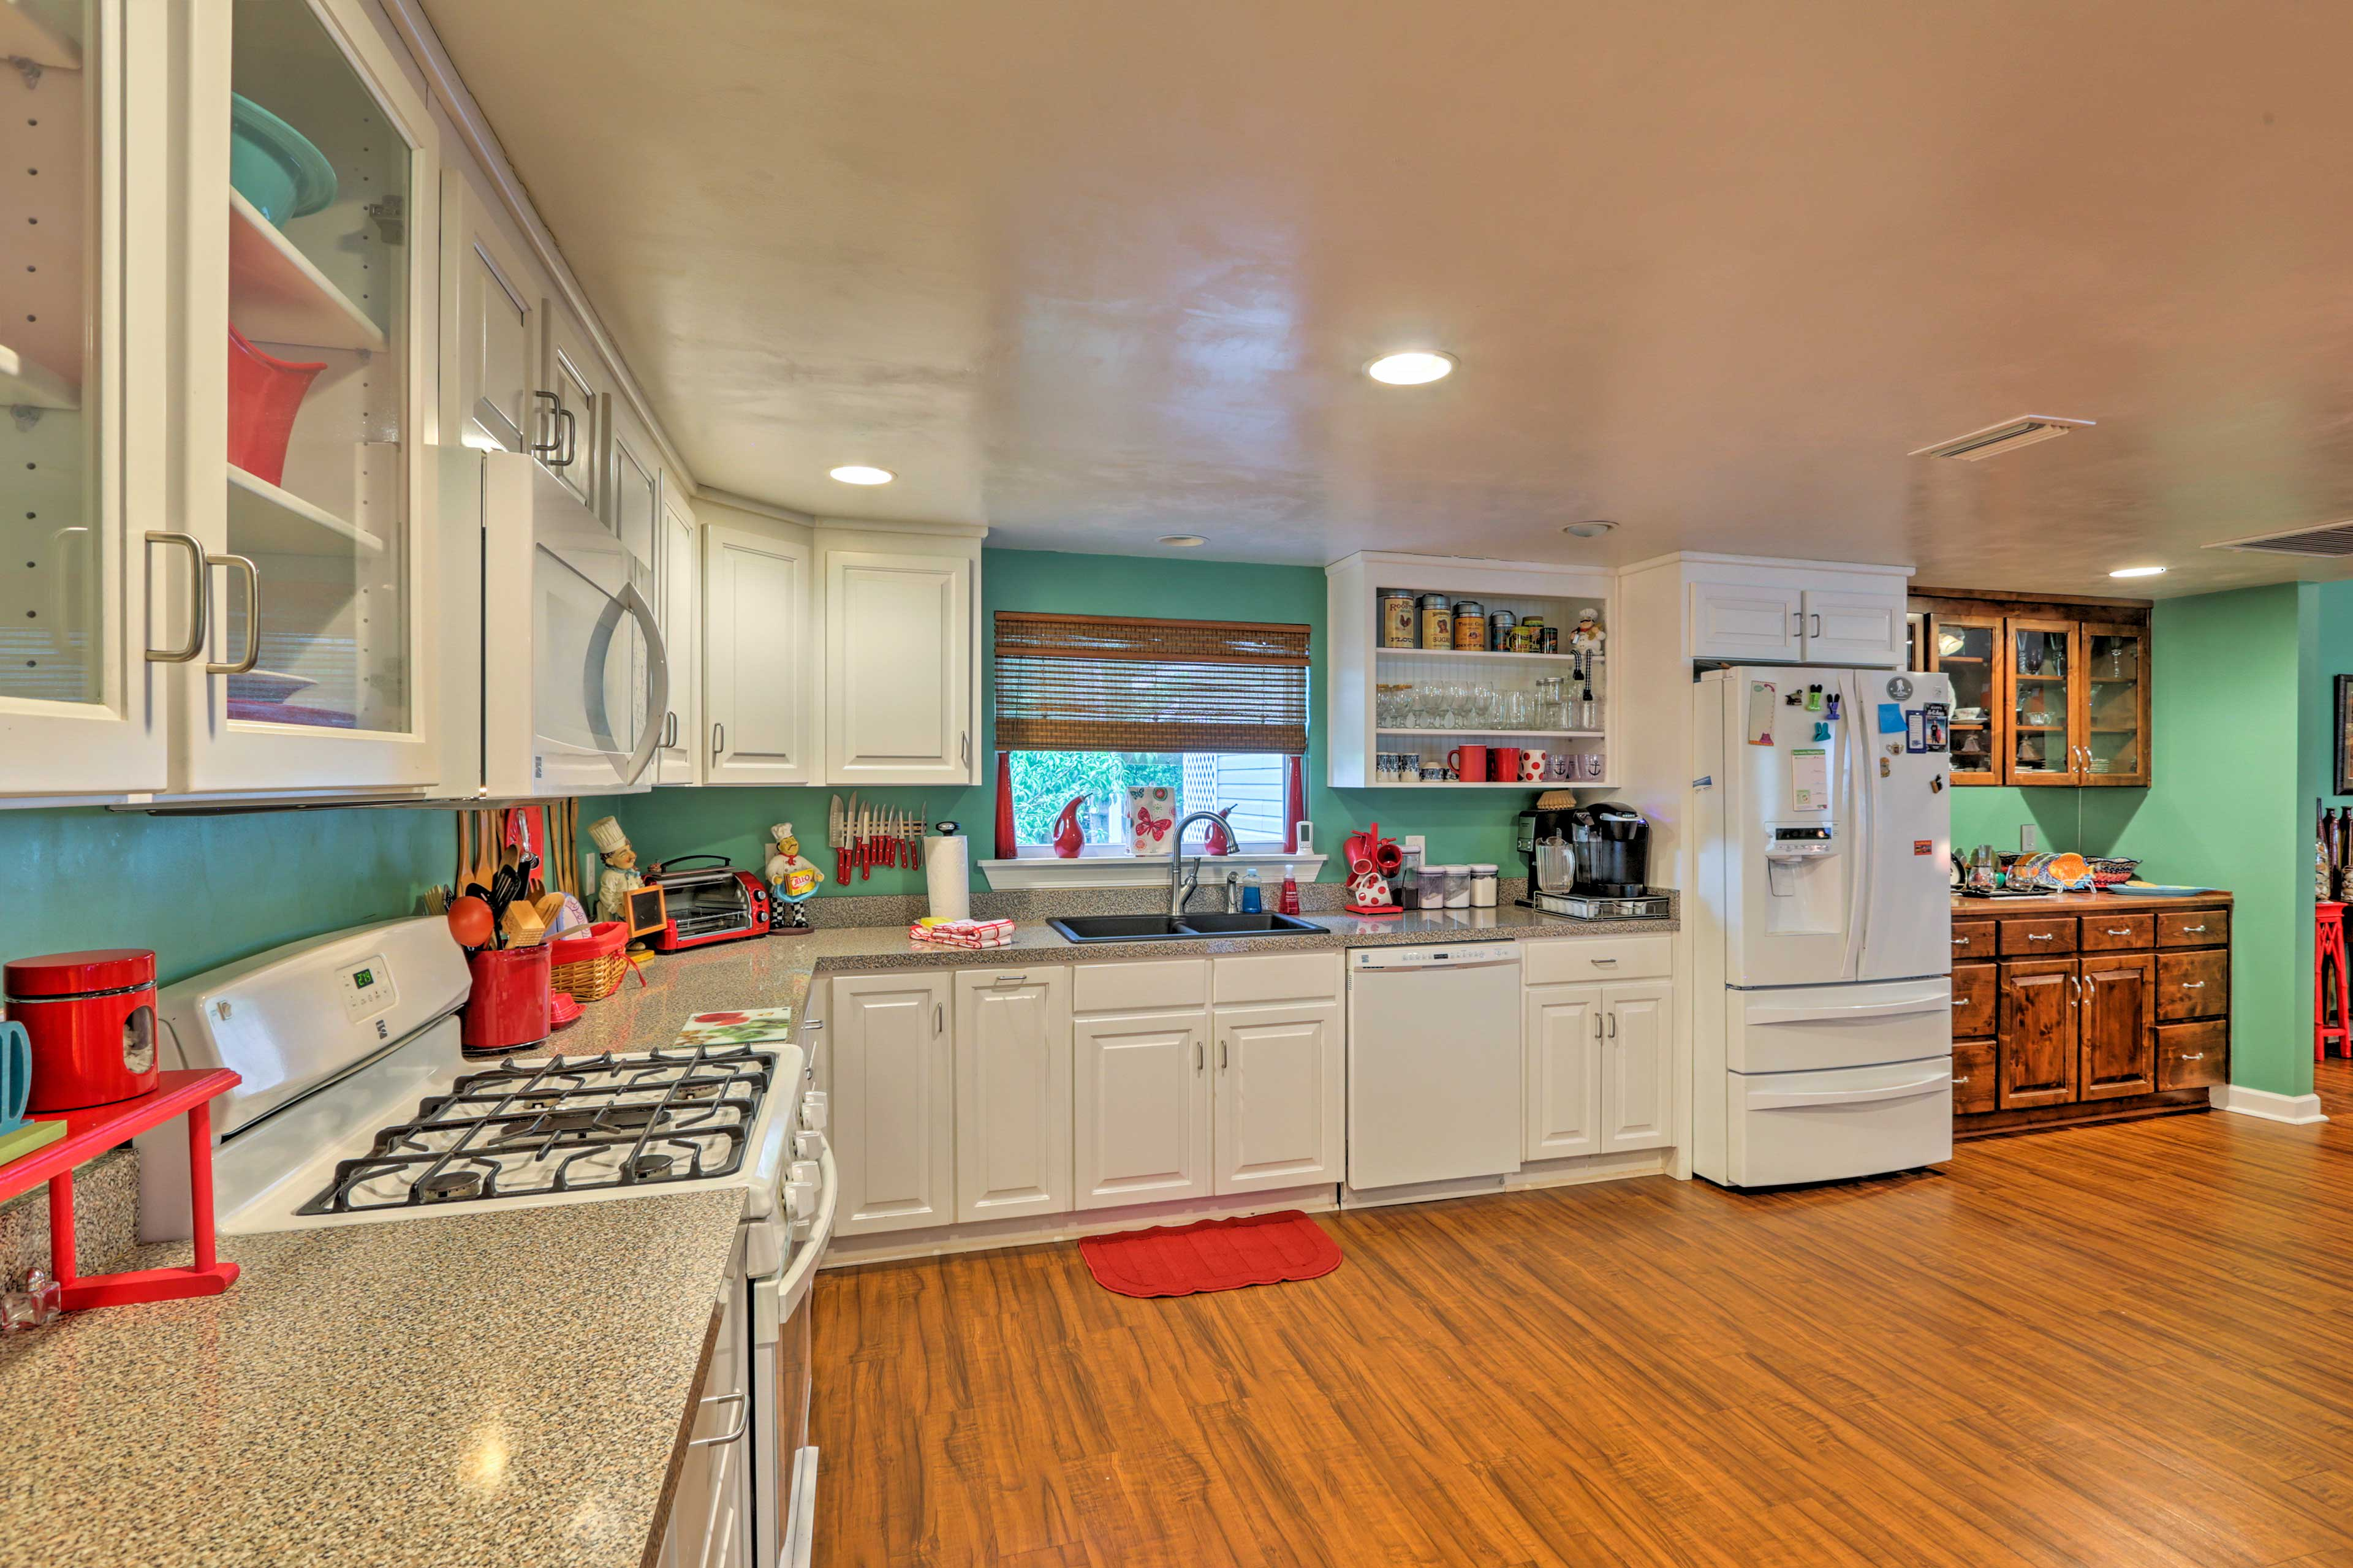 The kitchen is fully equipped to make cooking a breeze.